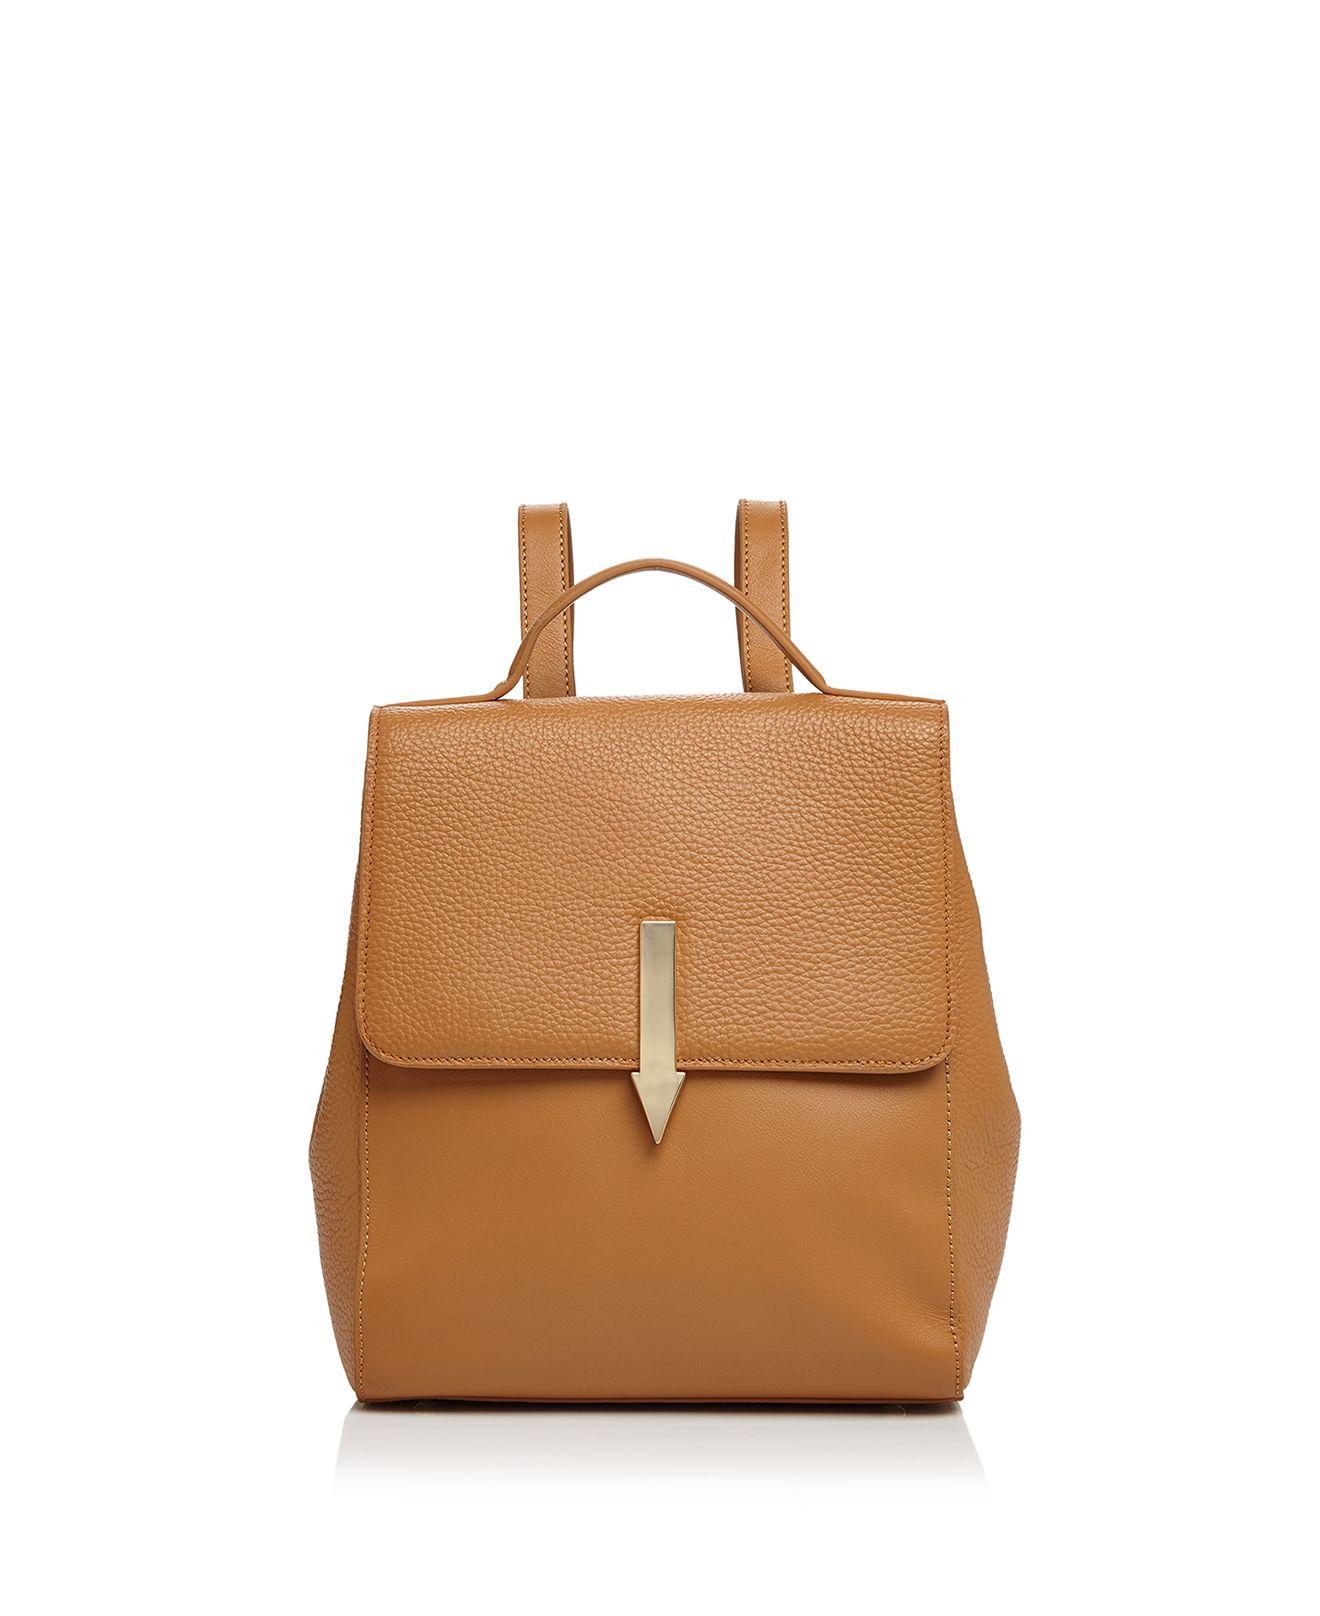 139afa56527 Gallery. Previously sold at: Bloomingdale's · Women's Mini Backpack